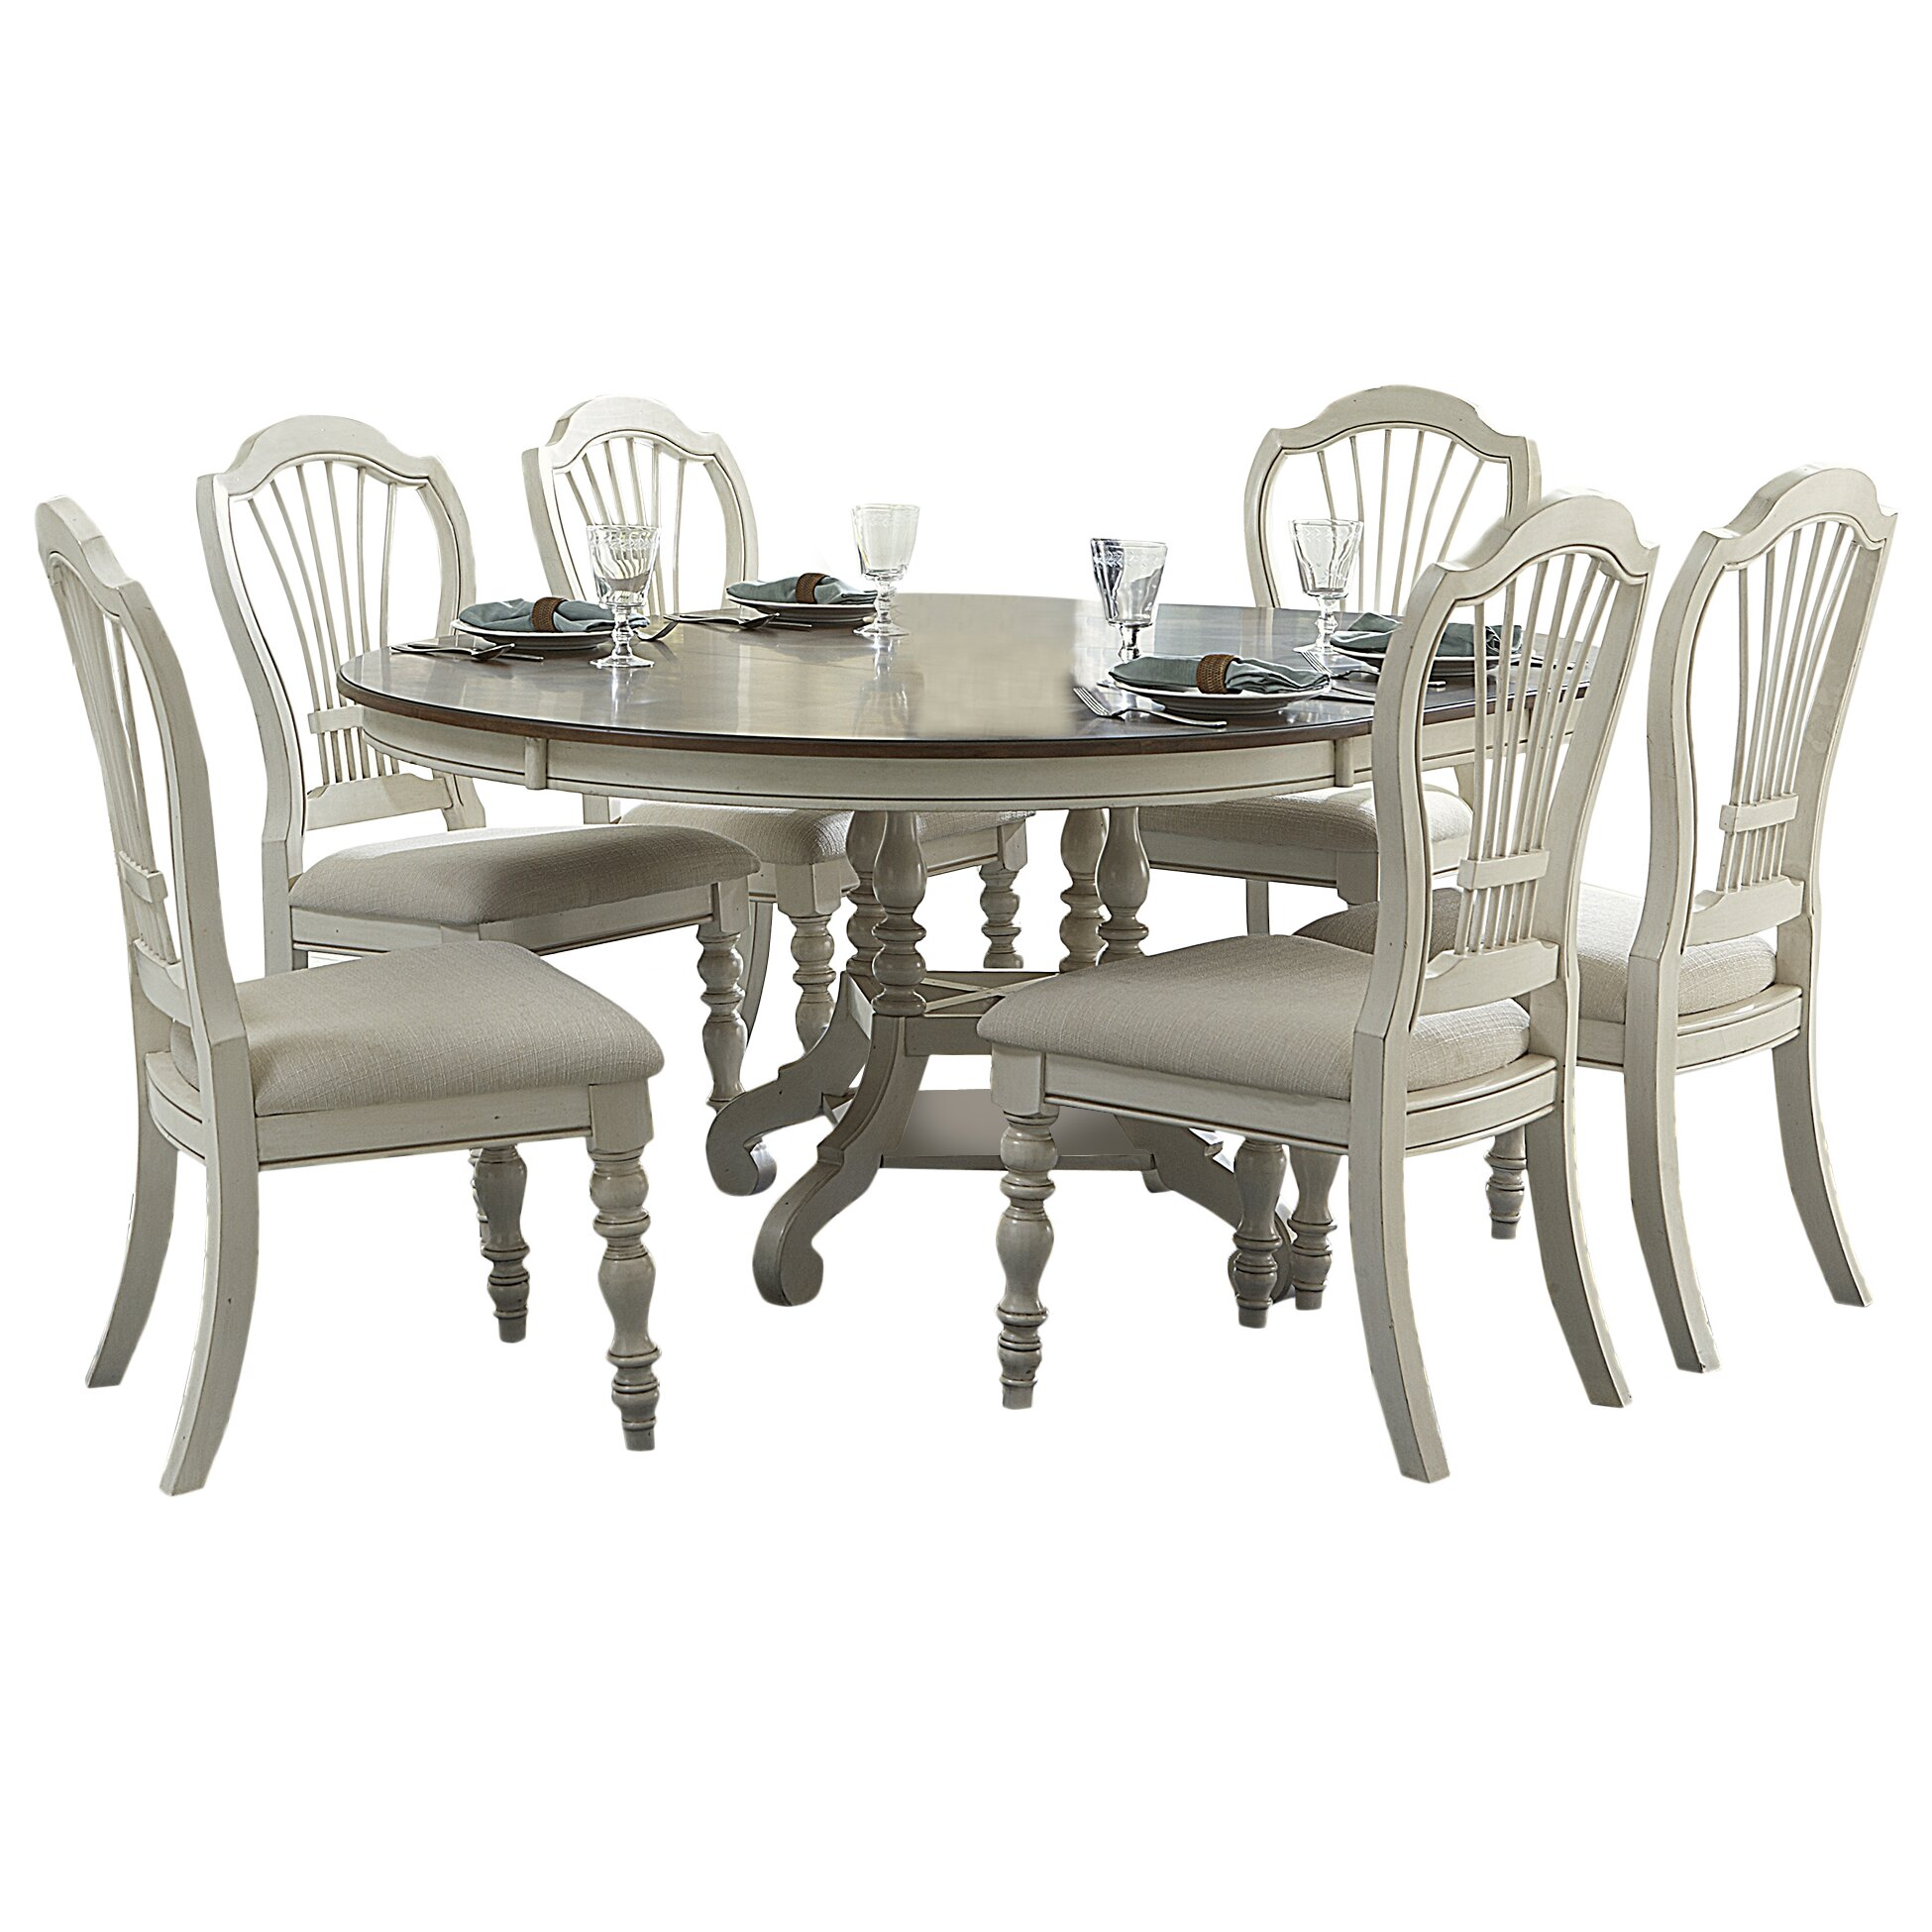 August grove mertie 7 piece dining set reviews wayfair for Furniture 7 reviews